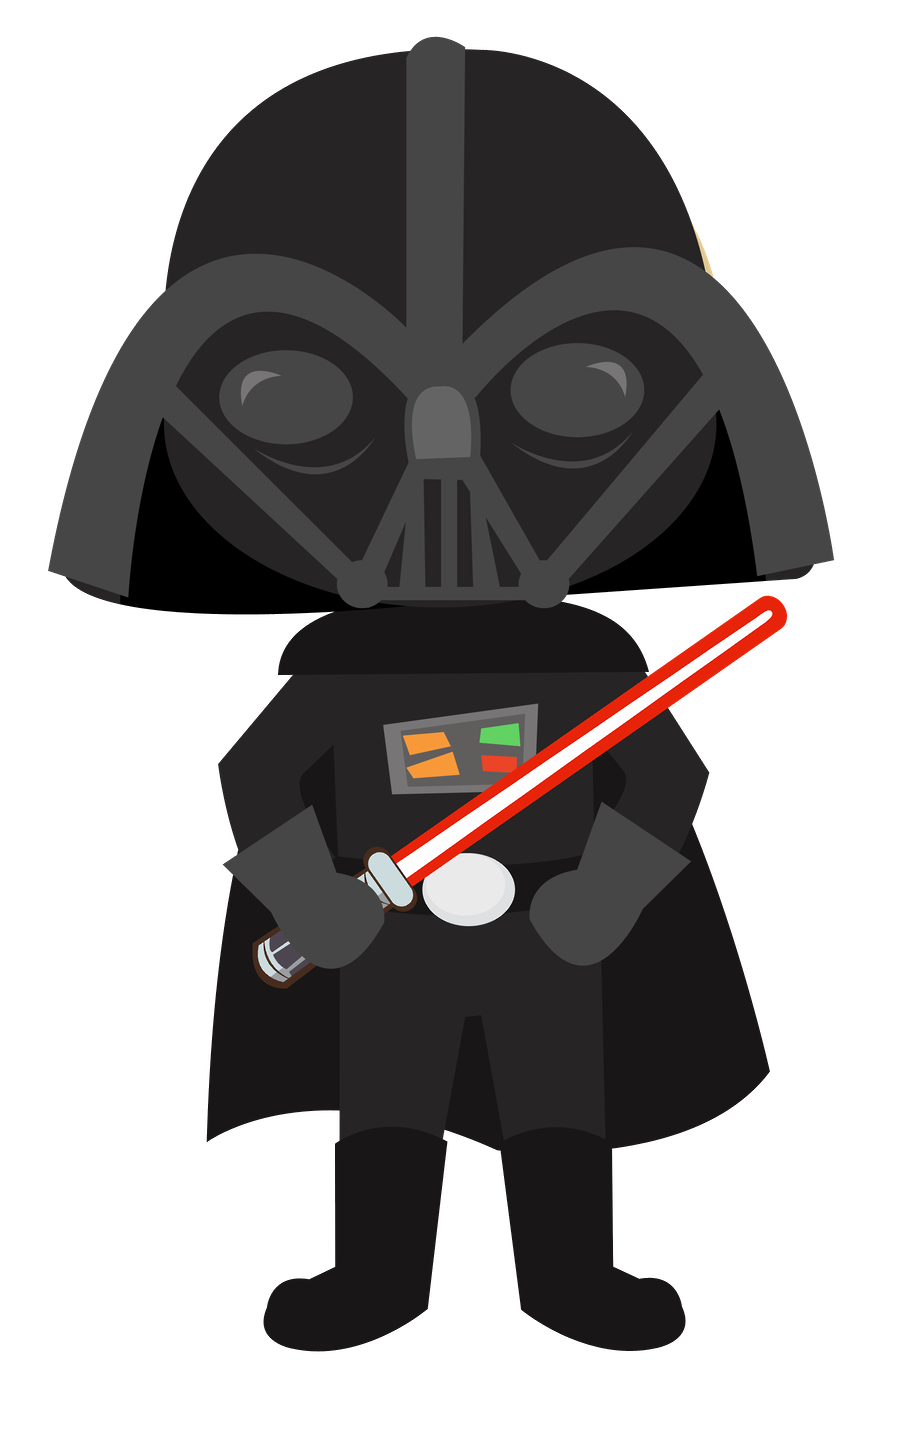 Star wars cartoon characters clipart svg free Star Wars - Minus | Felt Board Images | Pinterest | Star, Darth ... svg free